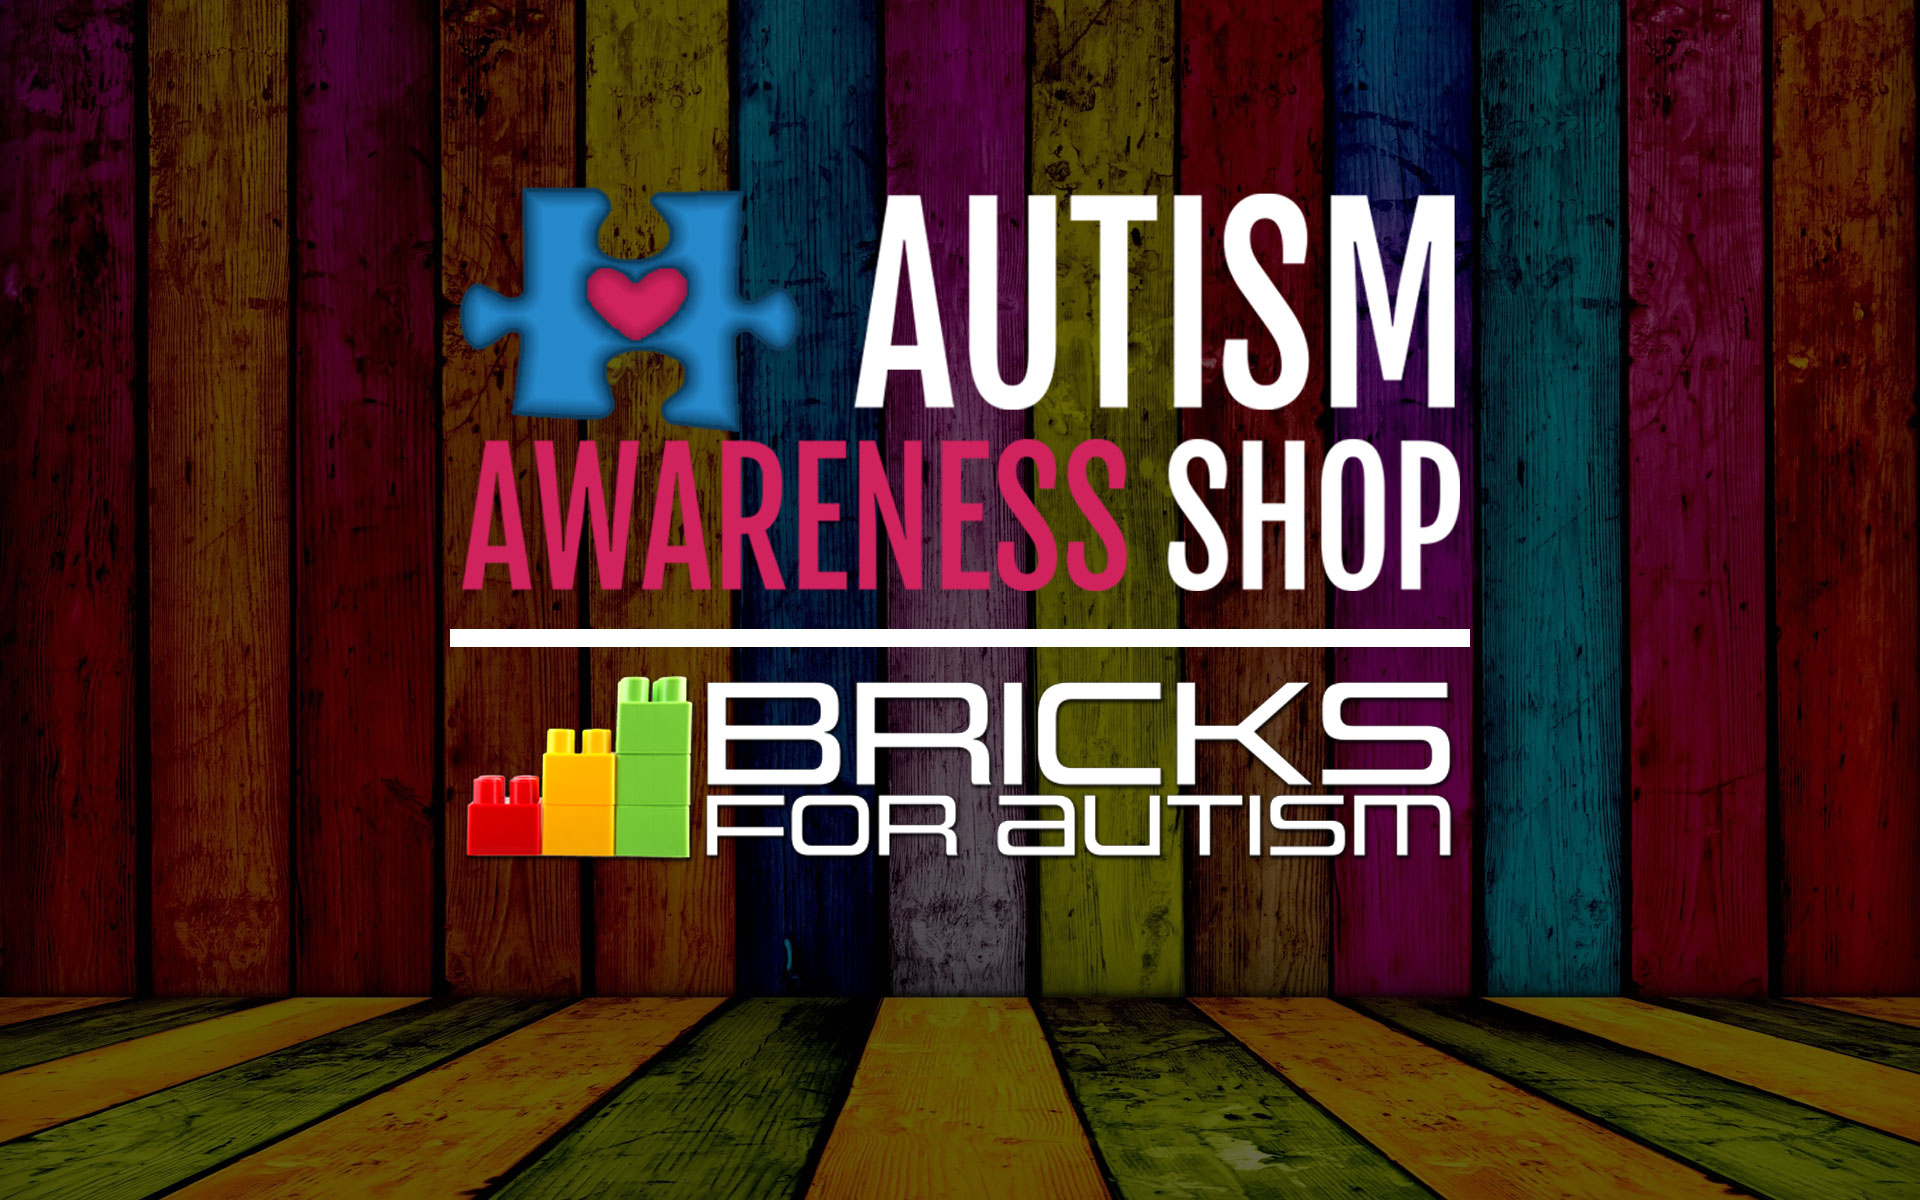 download-free-autism-wallpaper-branded